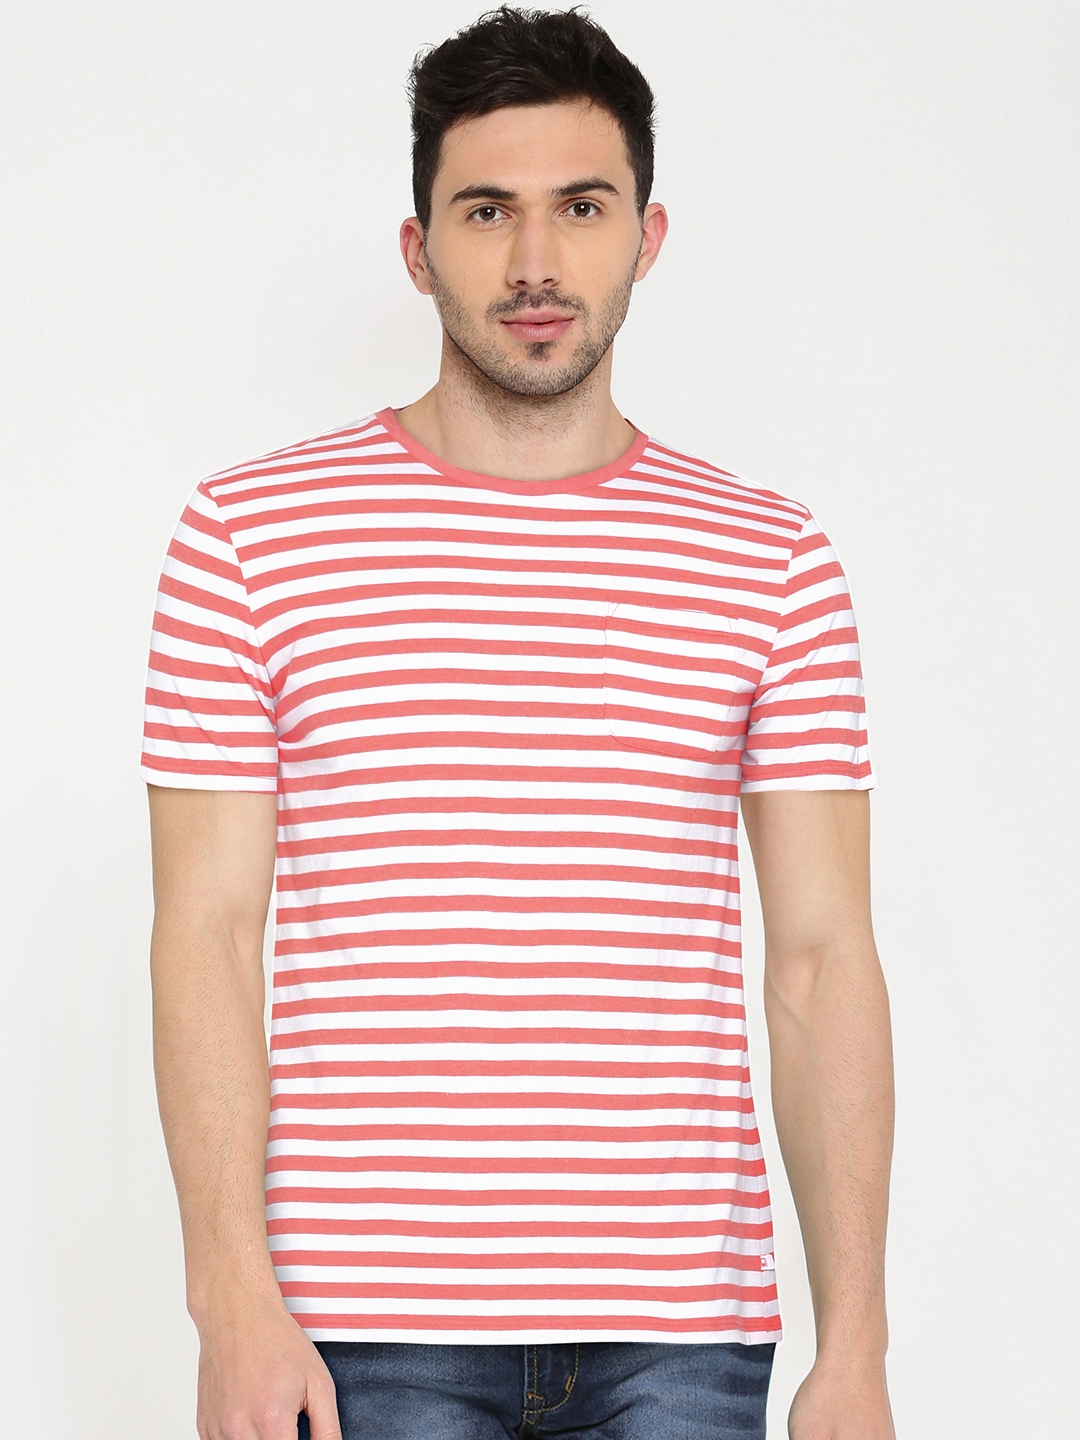 243c183e6d Buy United Colors Of Benetton Men White Striped Round Neck T Shirt ...